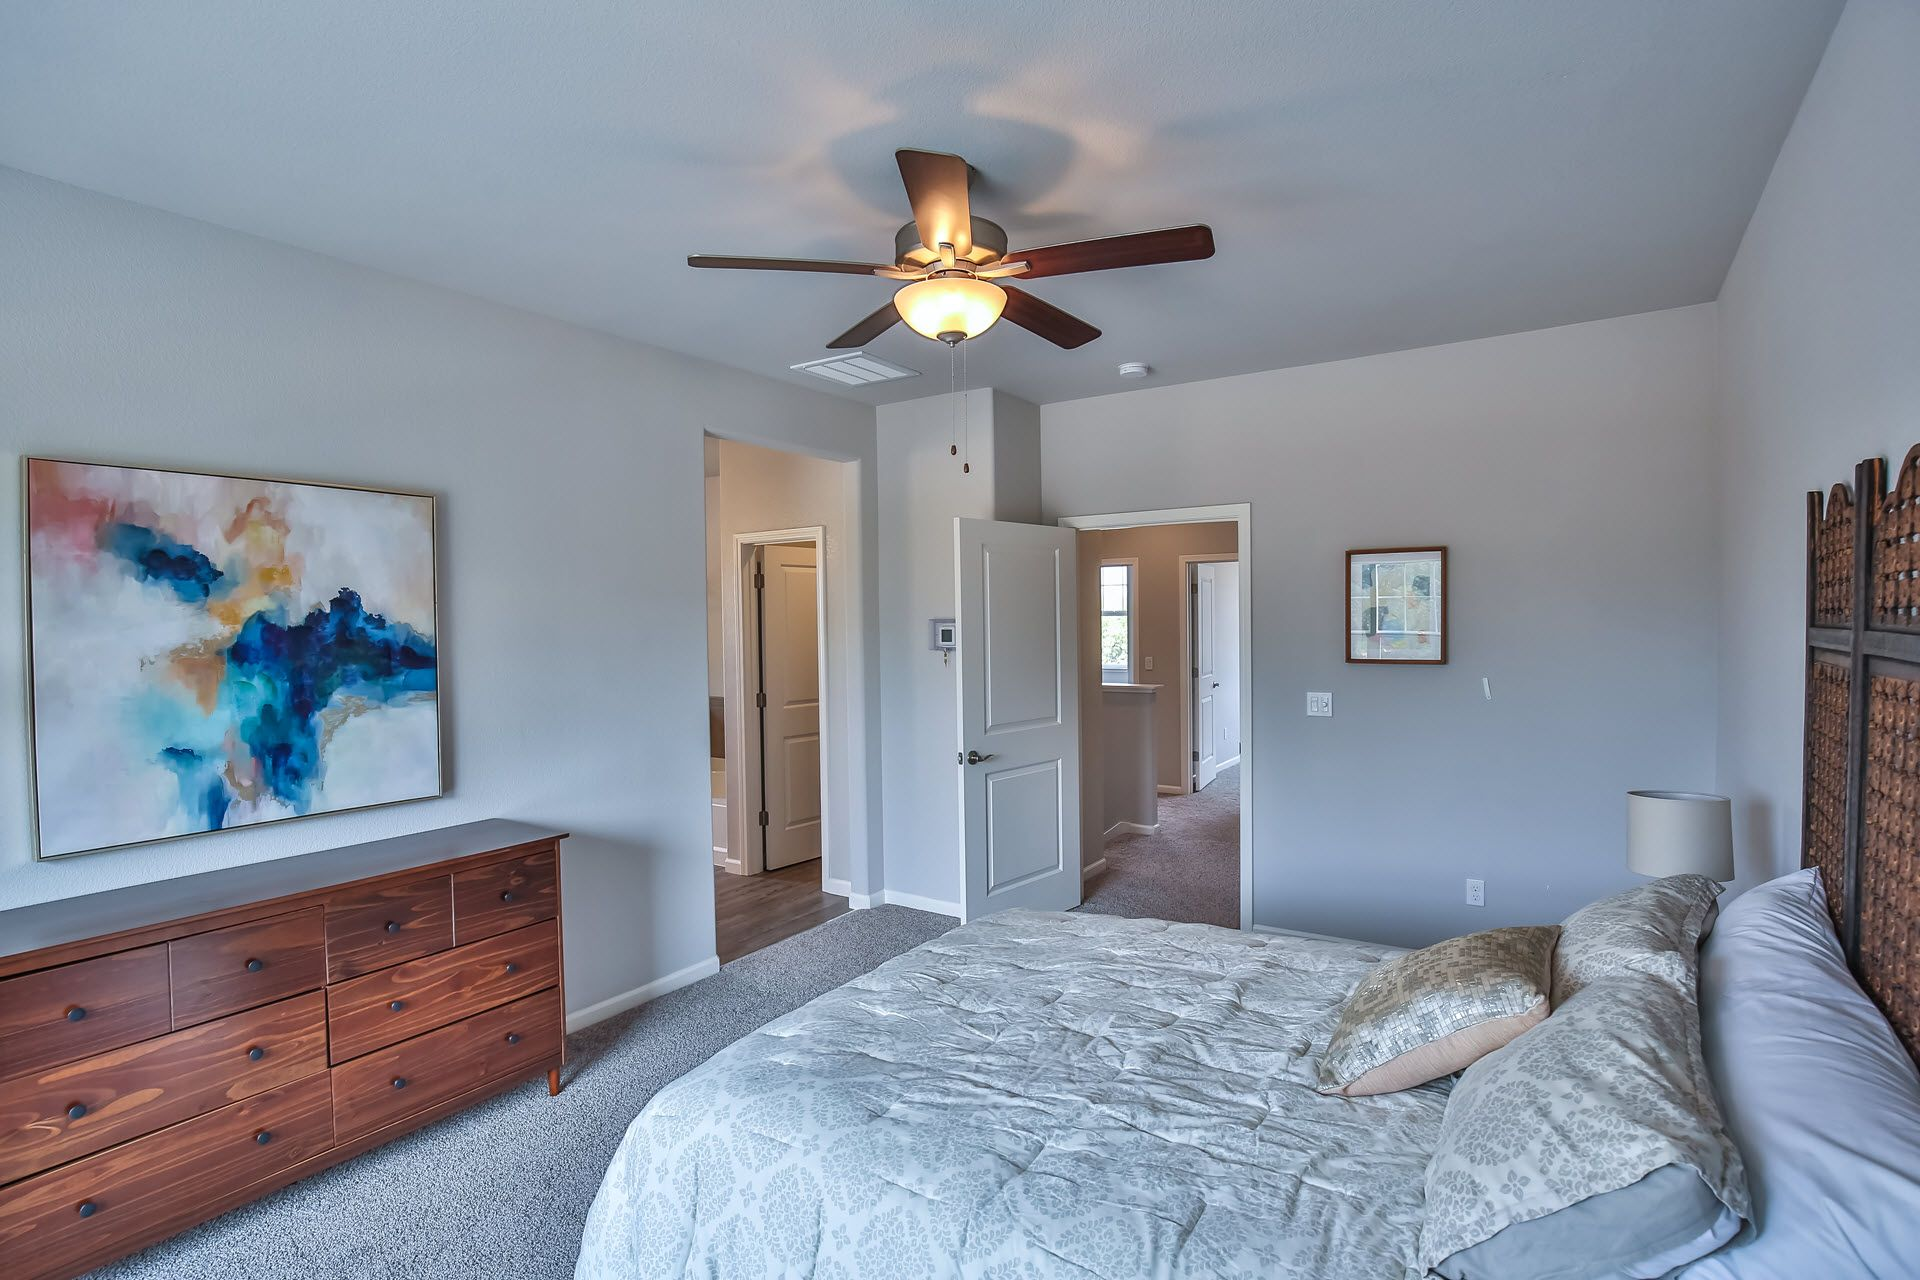 Bedroom featured in the Residence 1669 By Village by the Ponds  in Sacramento, CA